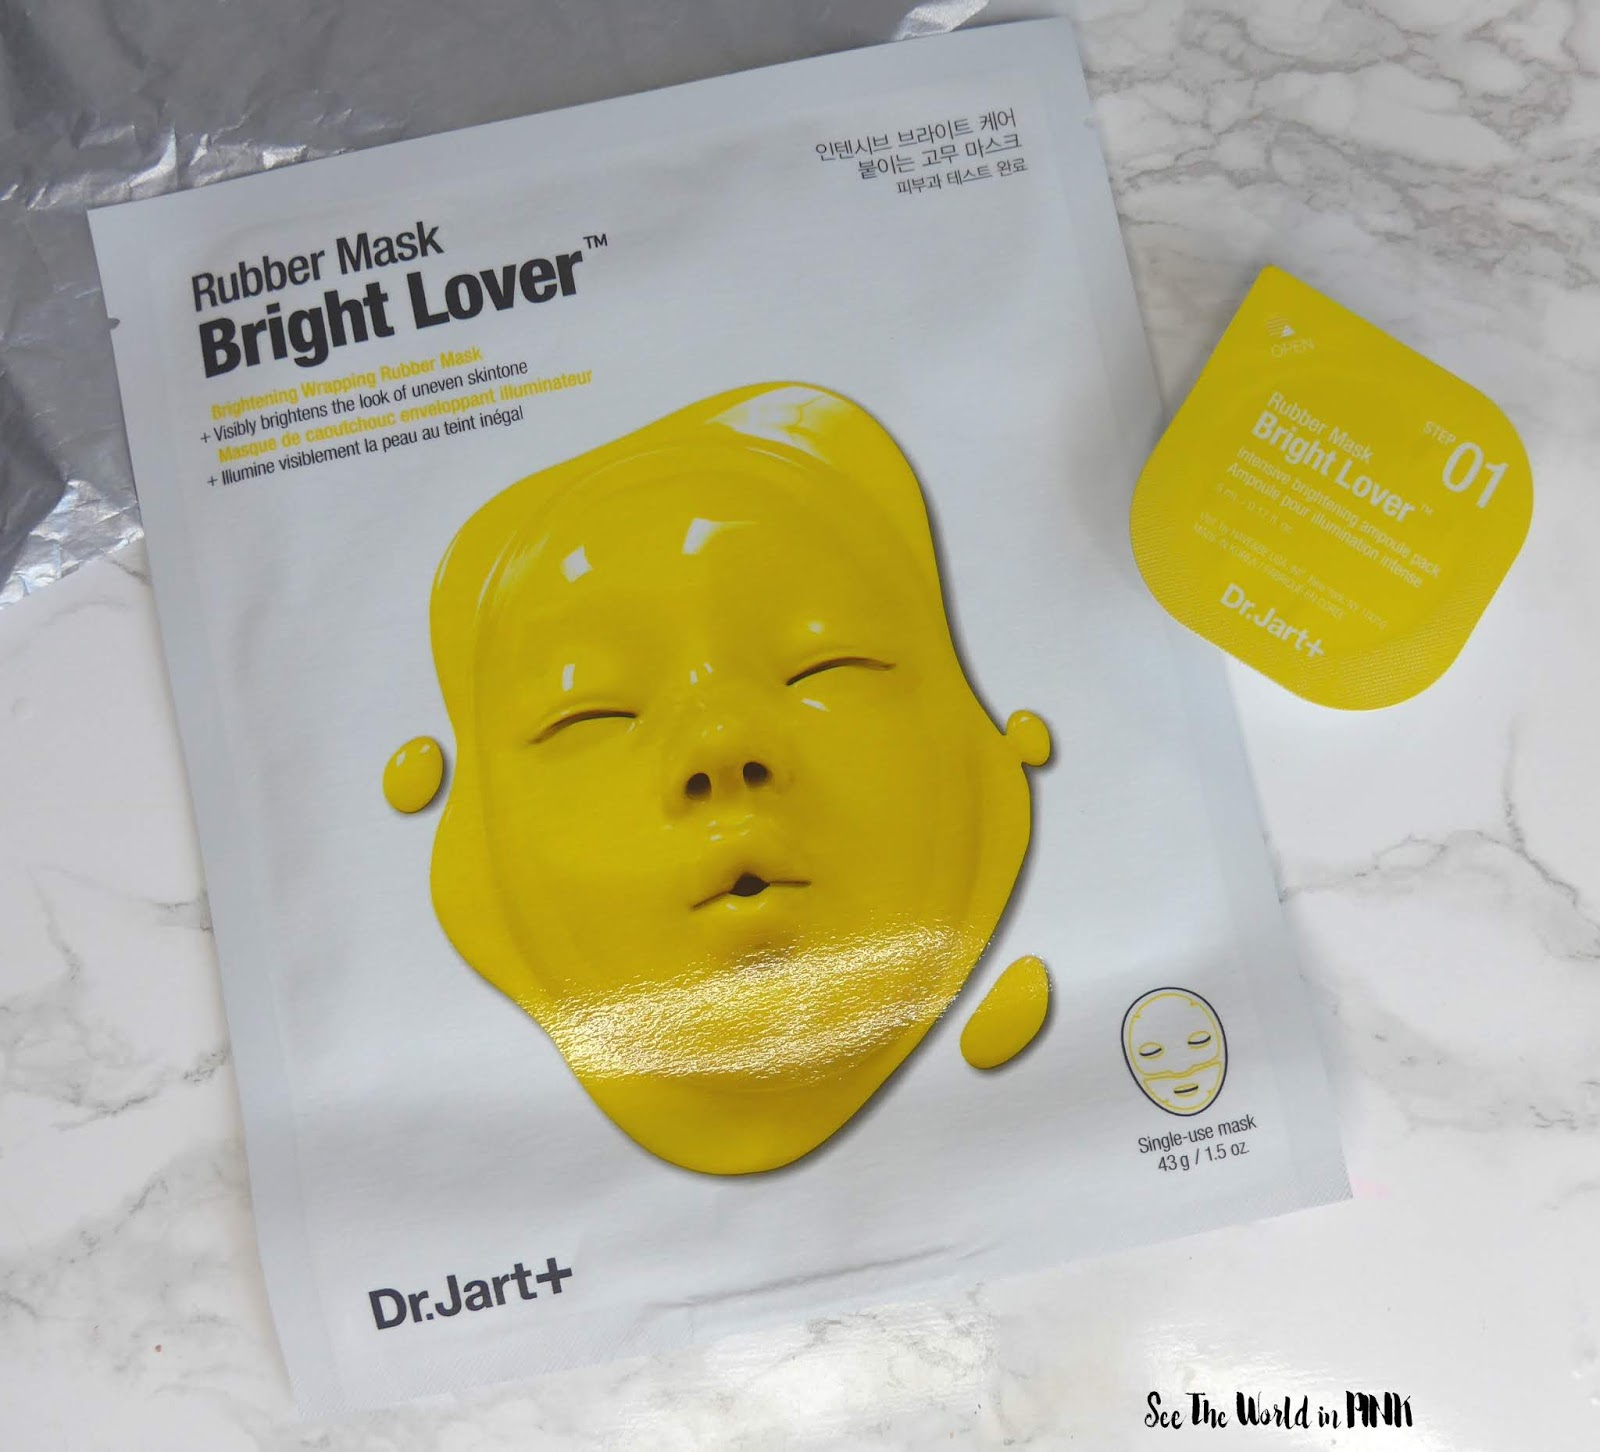 Skincare Sunday #CBBGetsSheetFaced Week Four Recap with Reviews - Dr Jart Bright Lover Rubber Mask